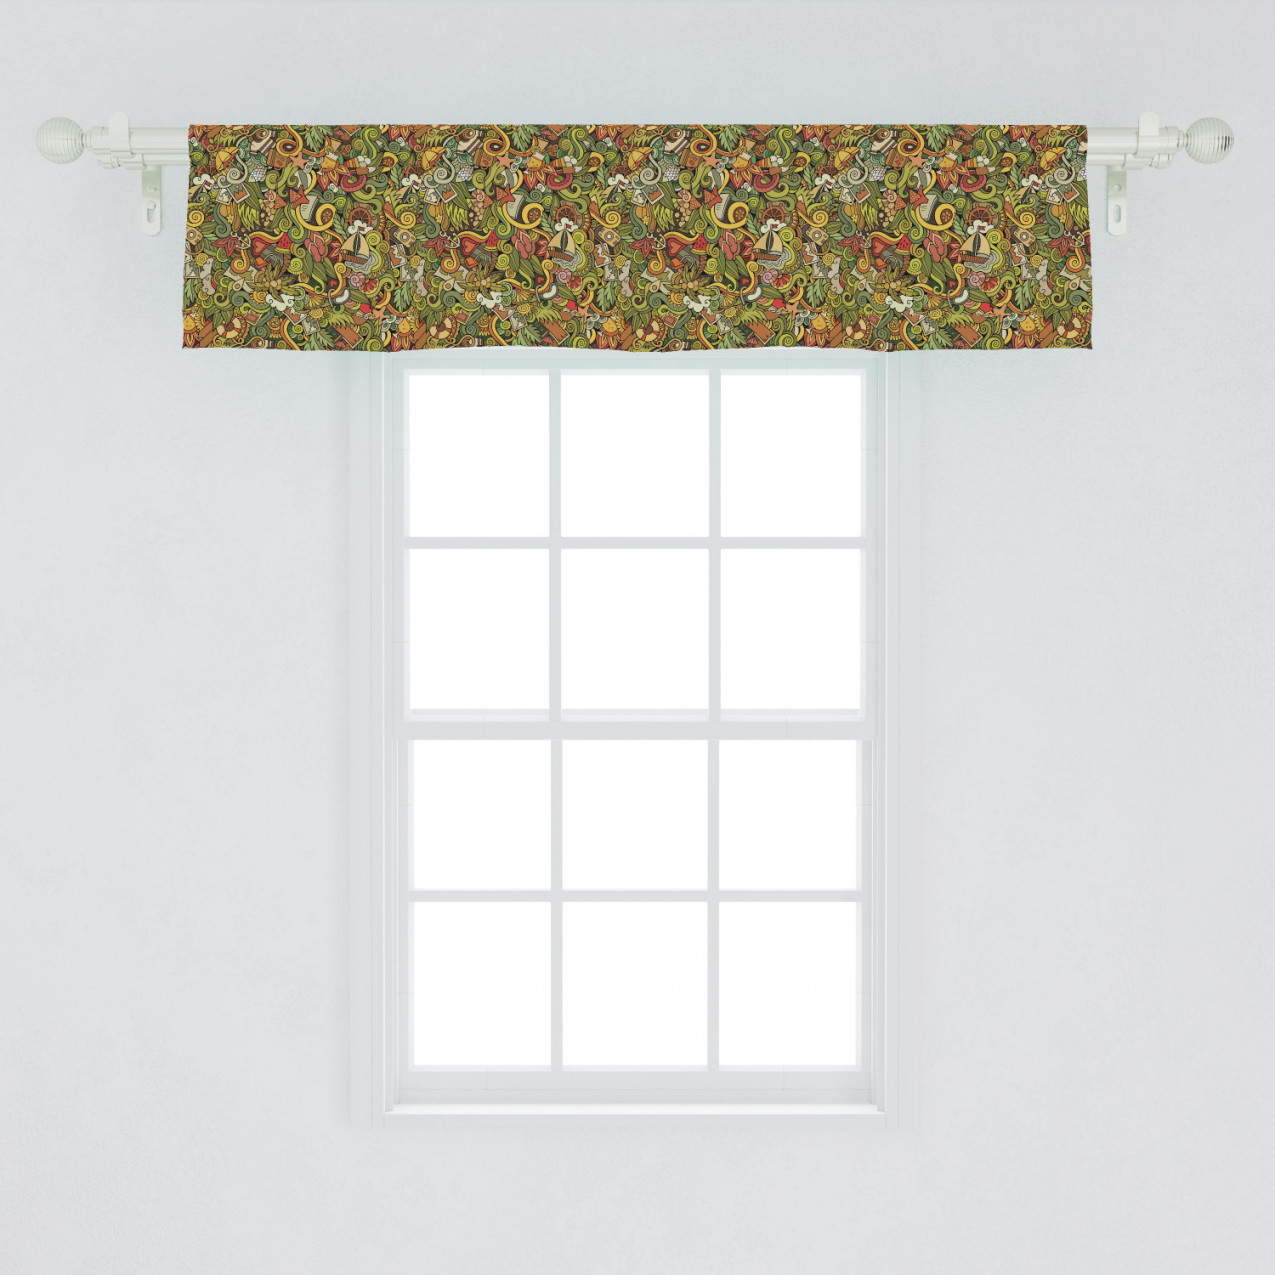 Window Valance Curtain Decor For Kitchen Living Room Bedroom regarding 14+ Inspiration Gallery For Valance Curtains For Living Room